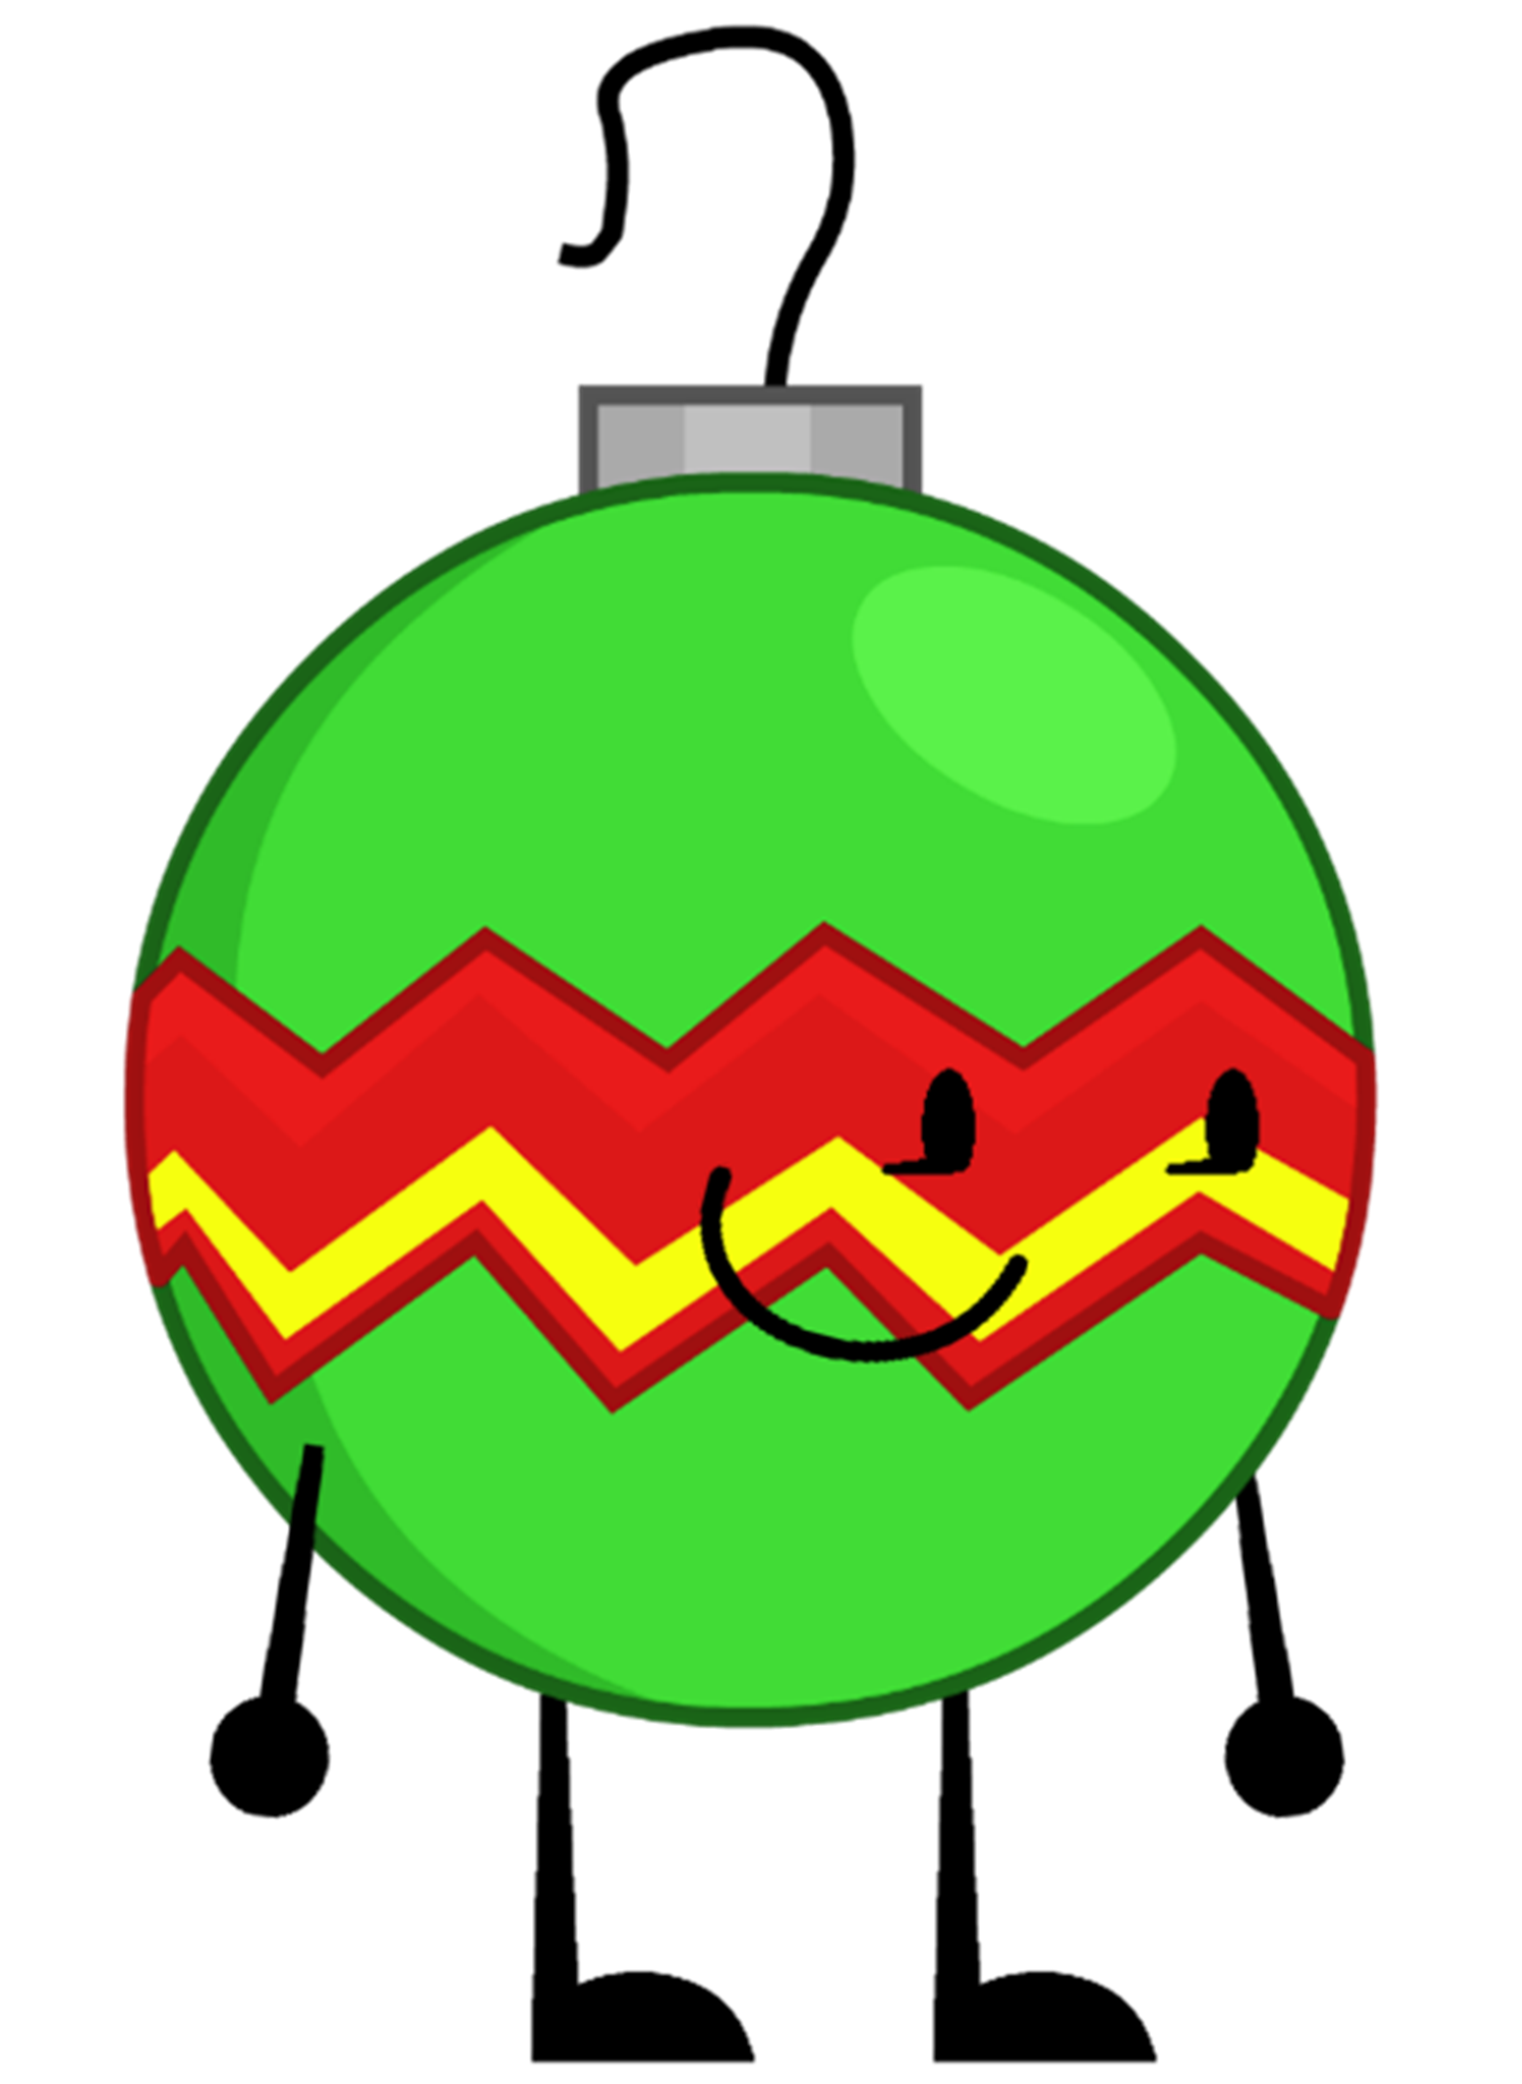 Notepad clipart red. Bauble object redundancy wiki